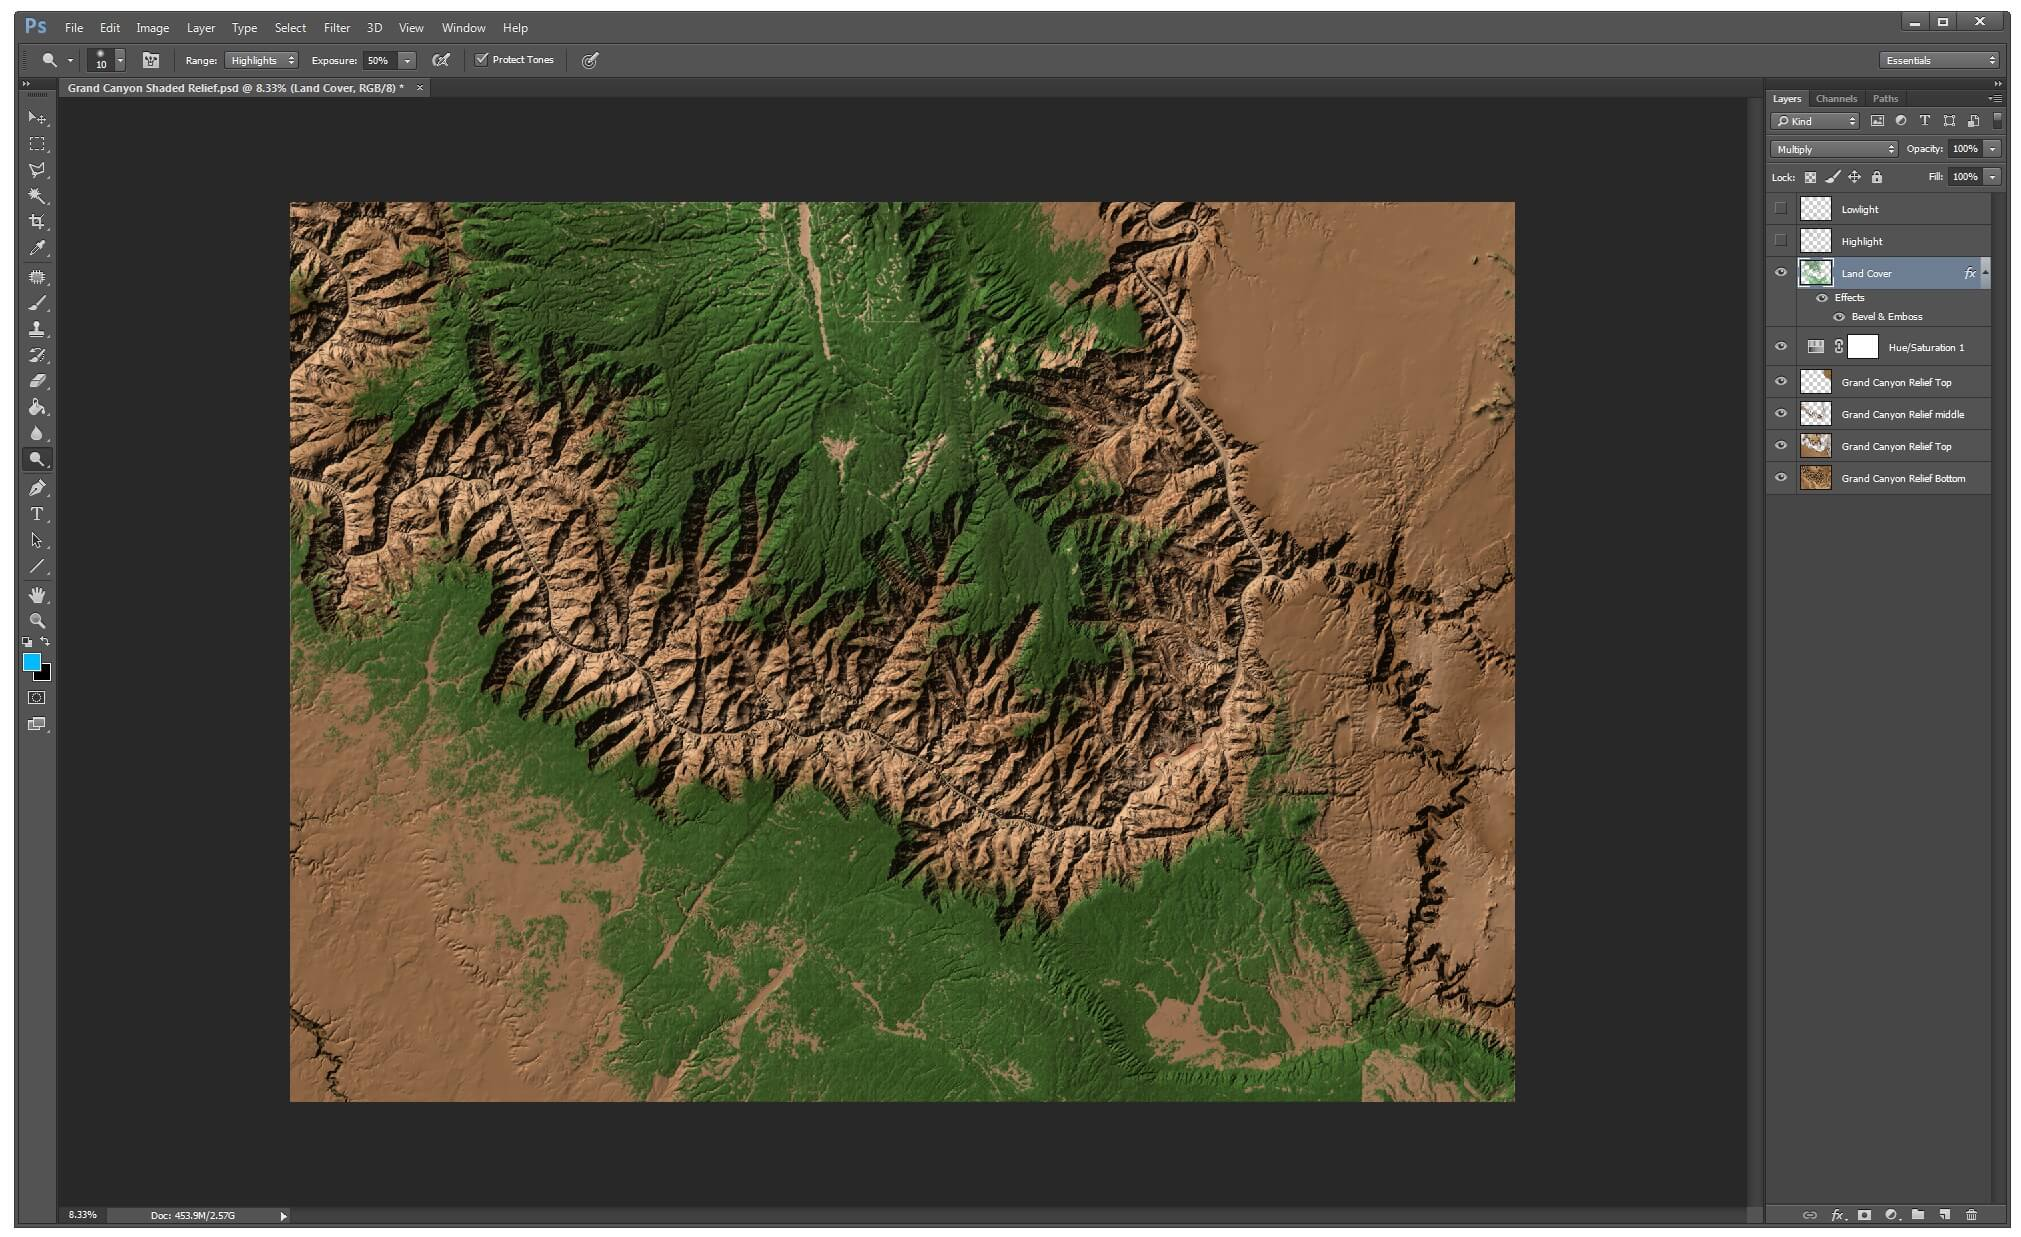 Surfer mapping software - Shaded relief layers in Photoshop with land cover